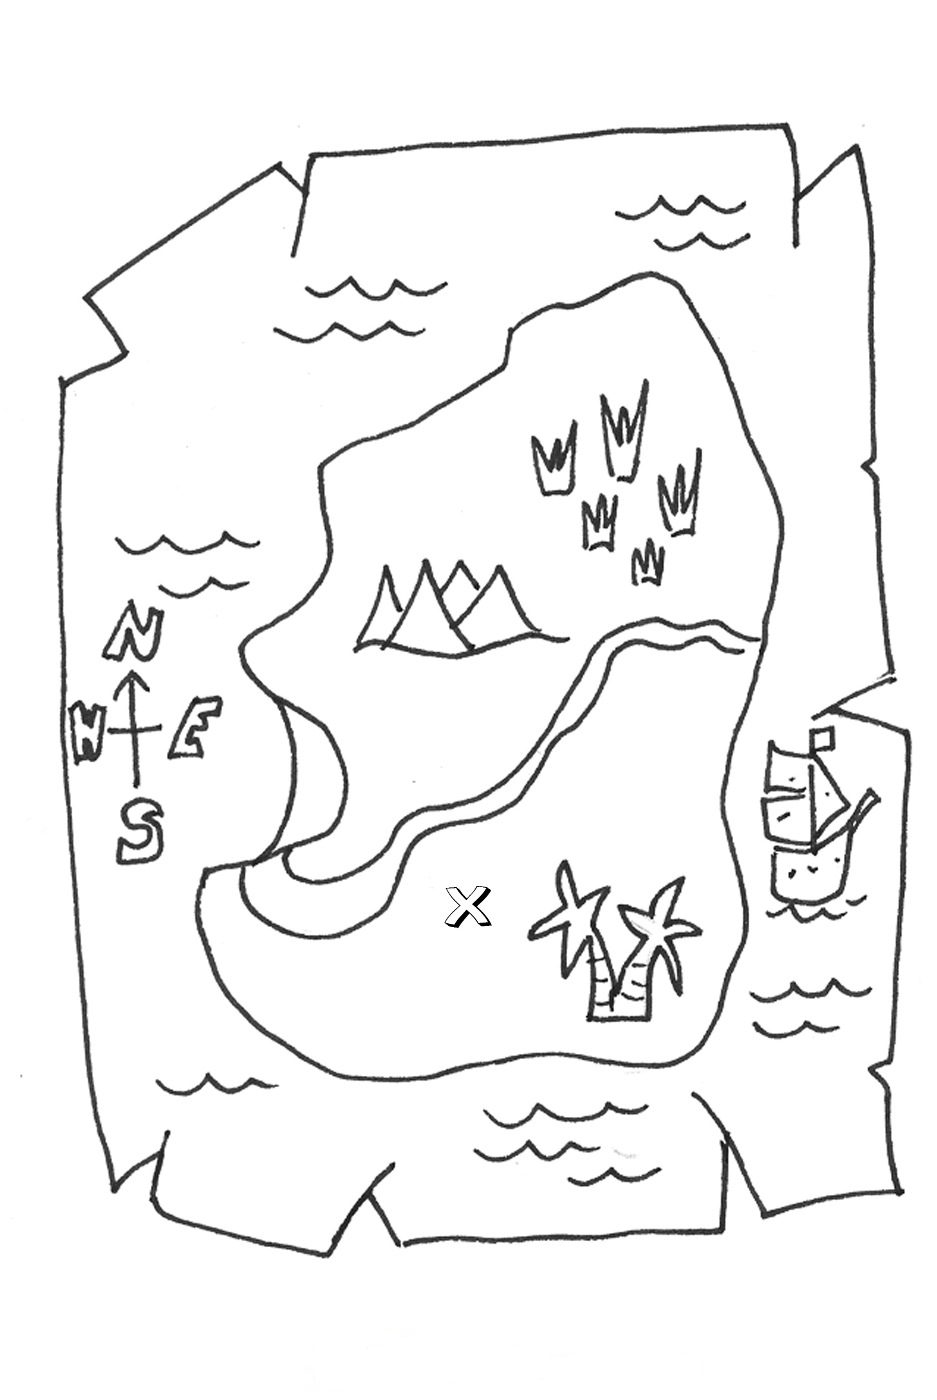 Treasure Map Coloring Pages World map coloring page